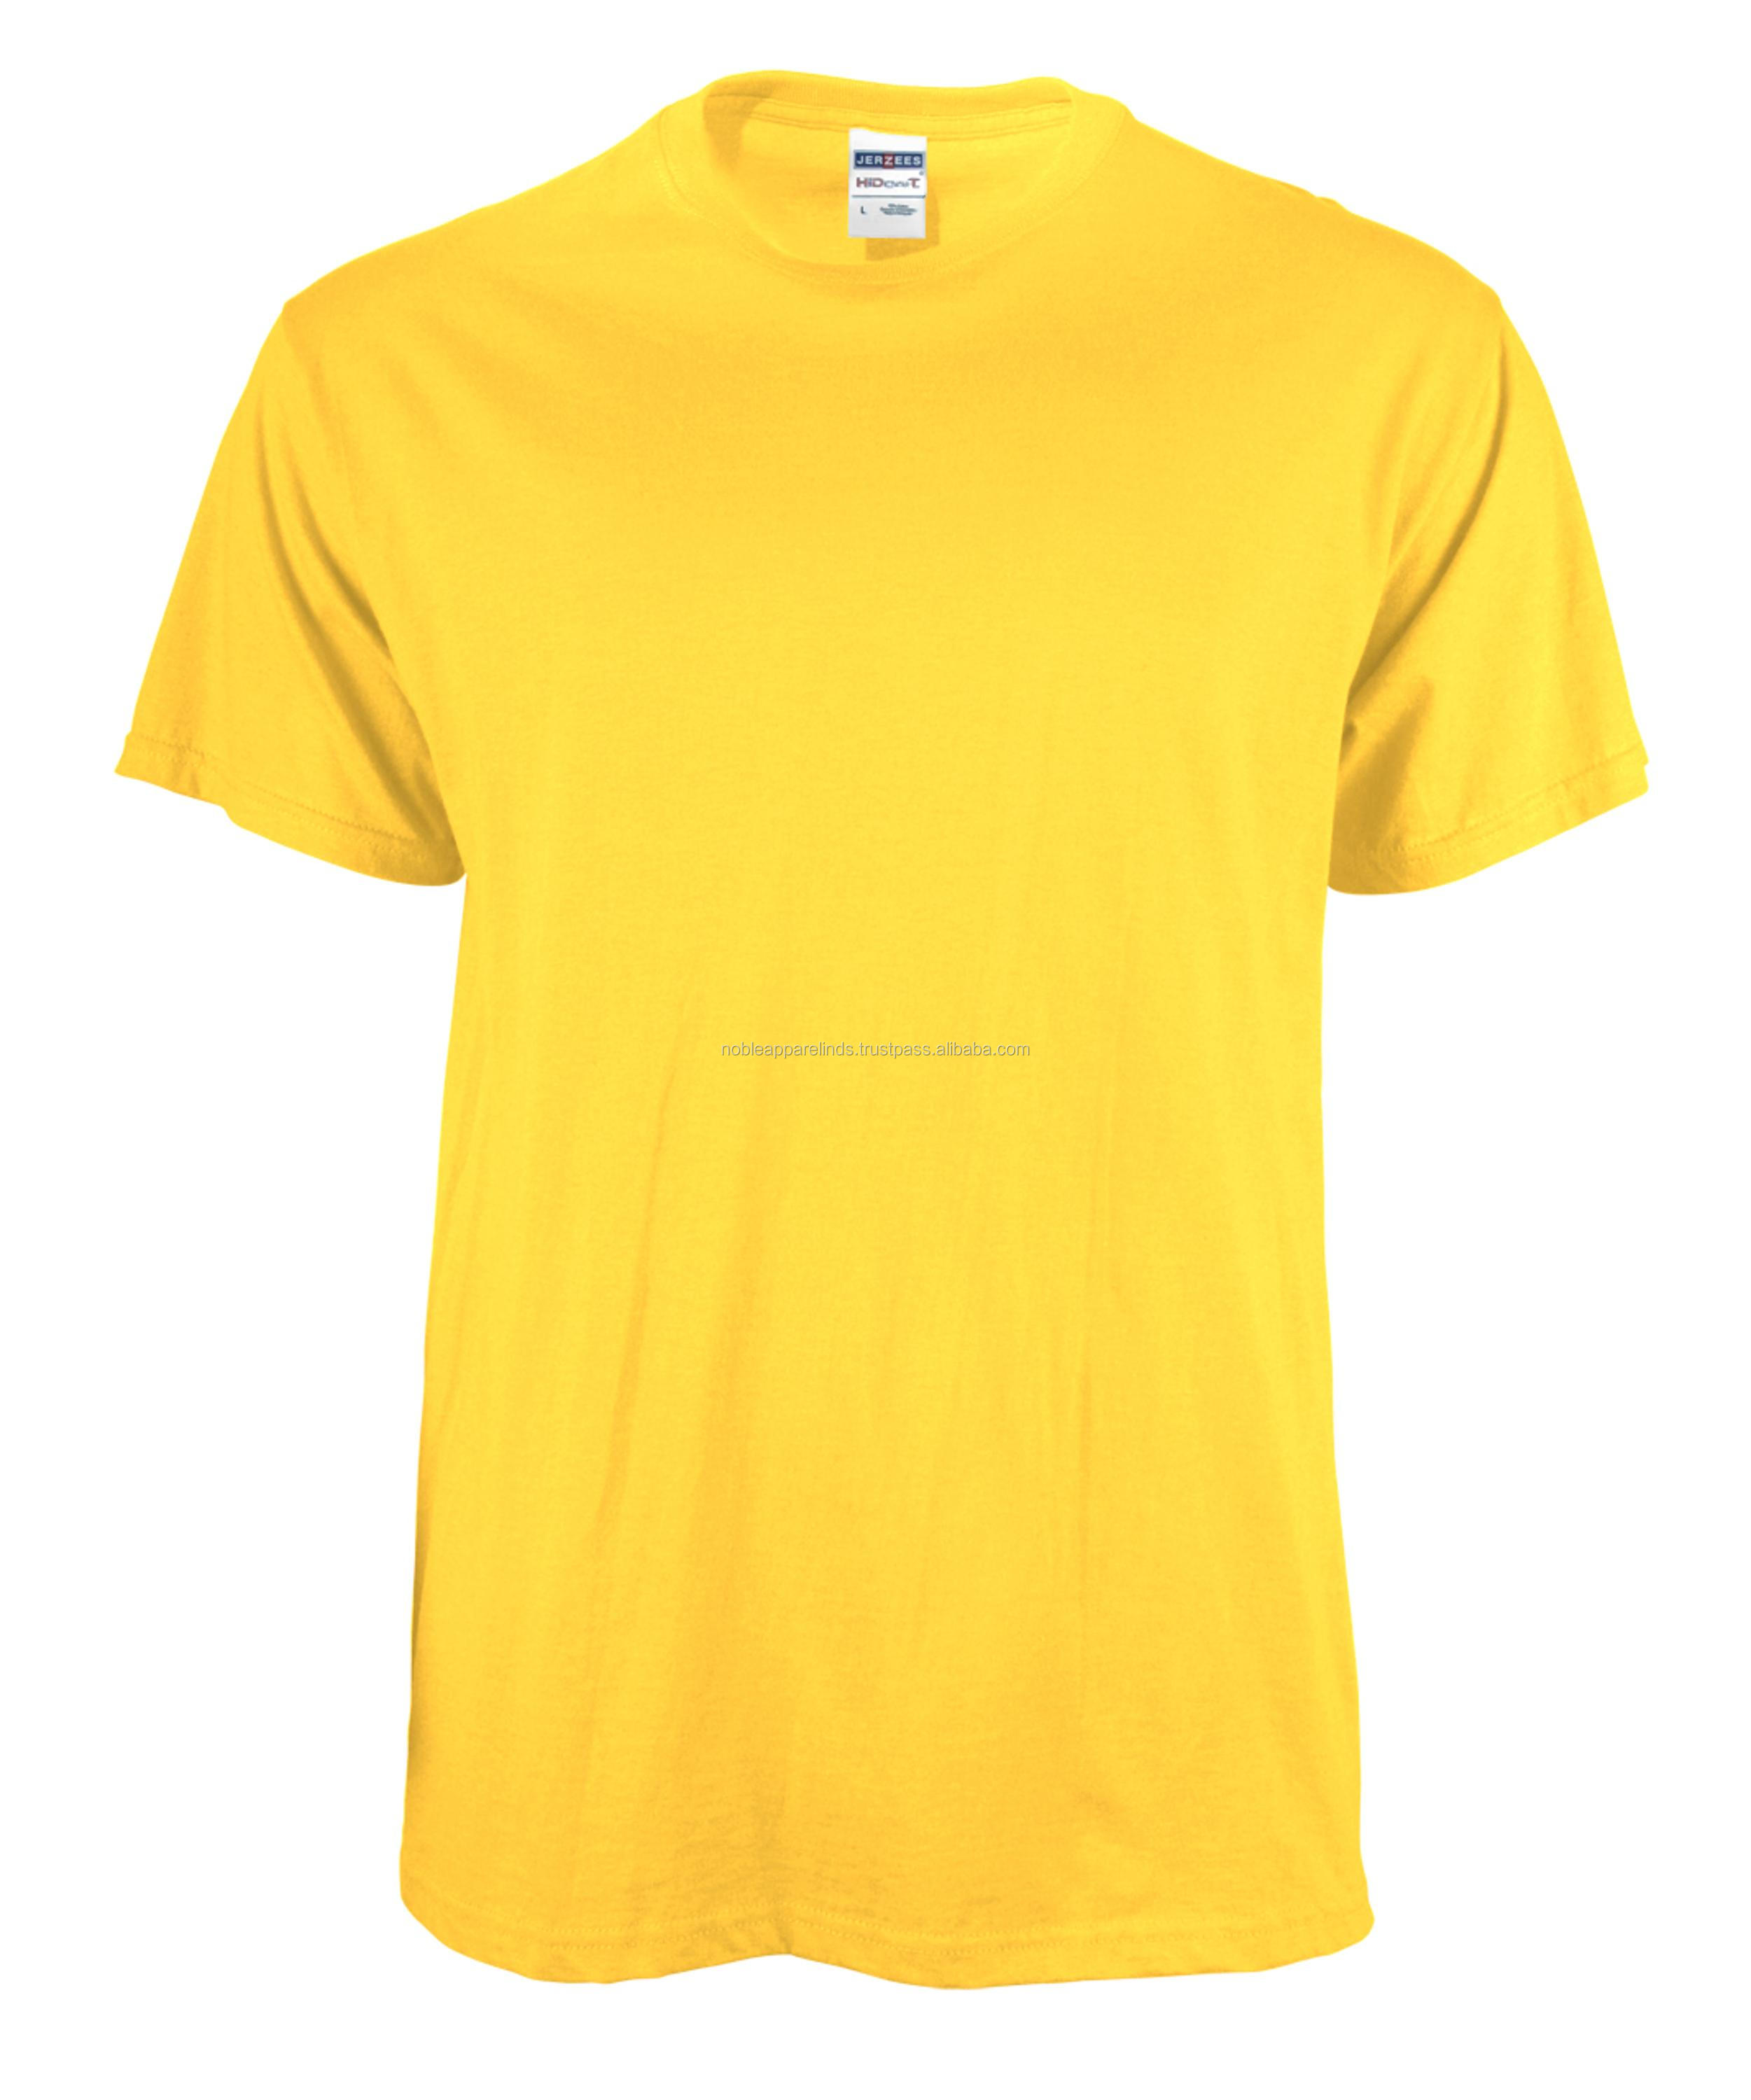 T shirt yellow color plain full t shirts nice sttich and fit fitting style for boy graceful design boy